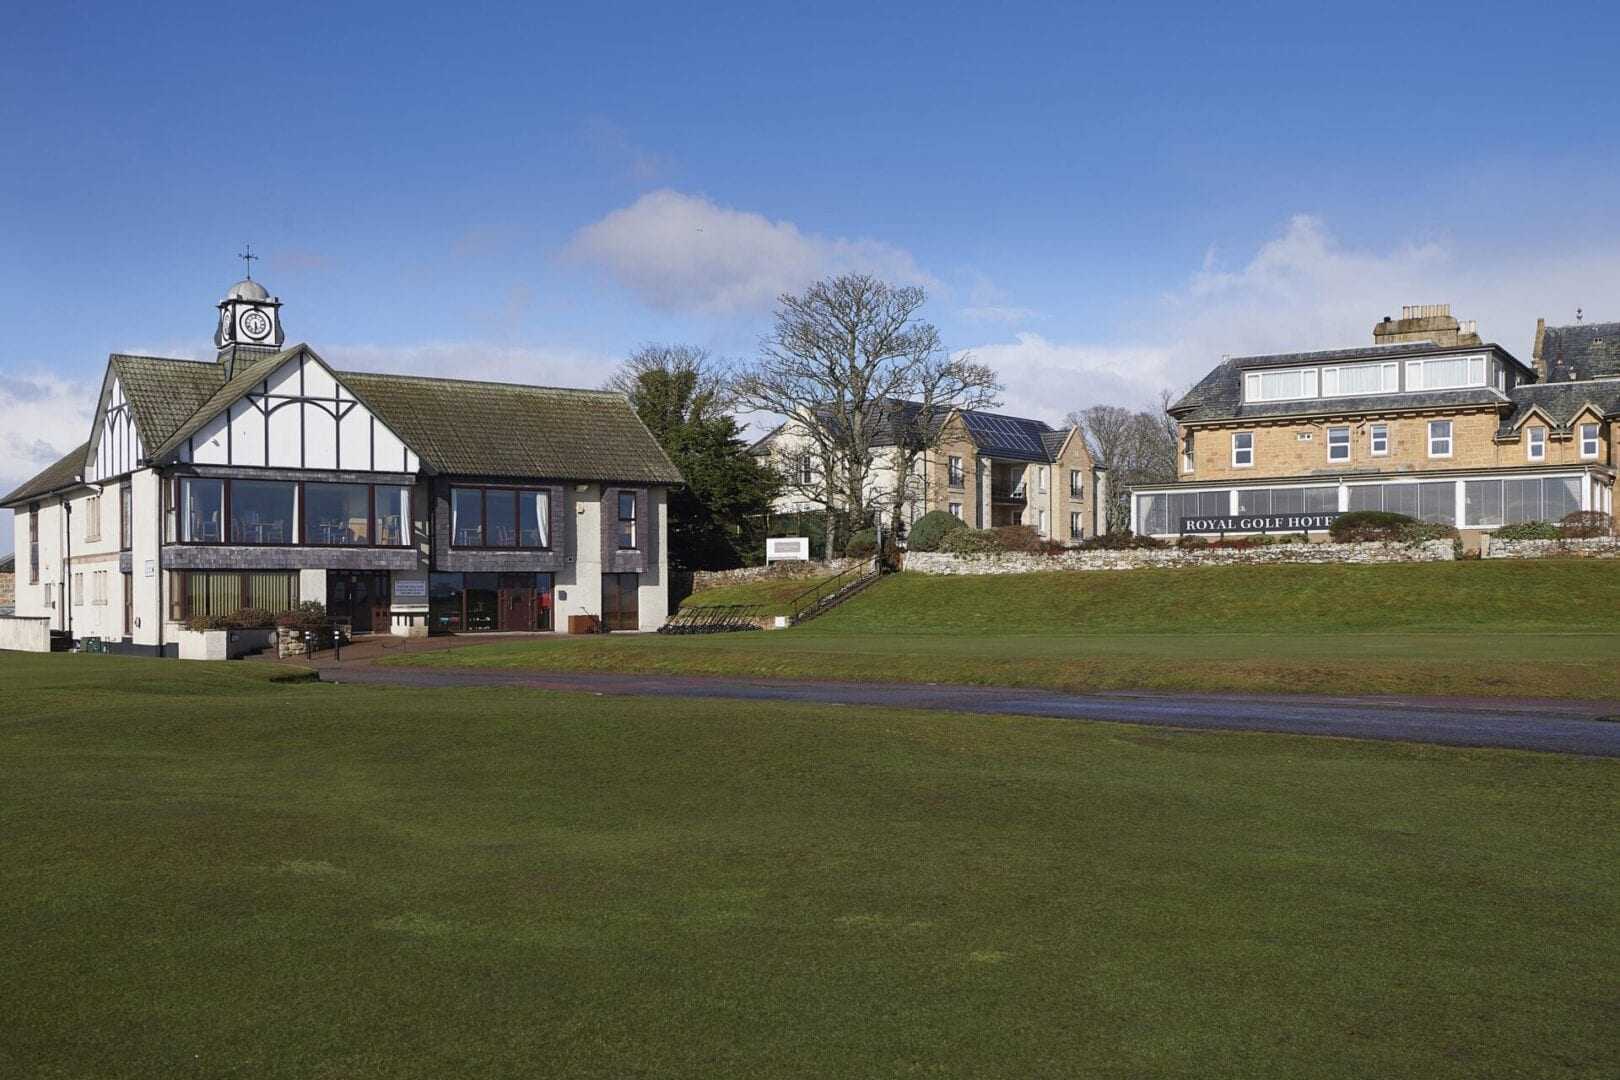 Royal Golf Hotel - Dornoch